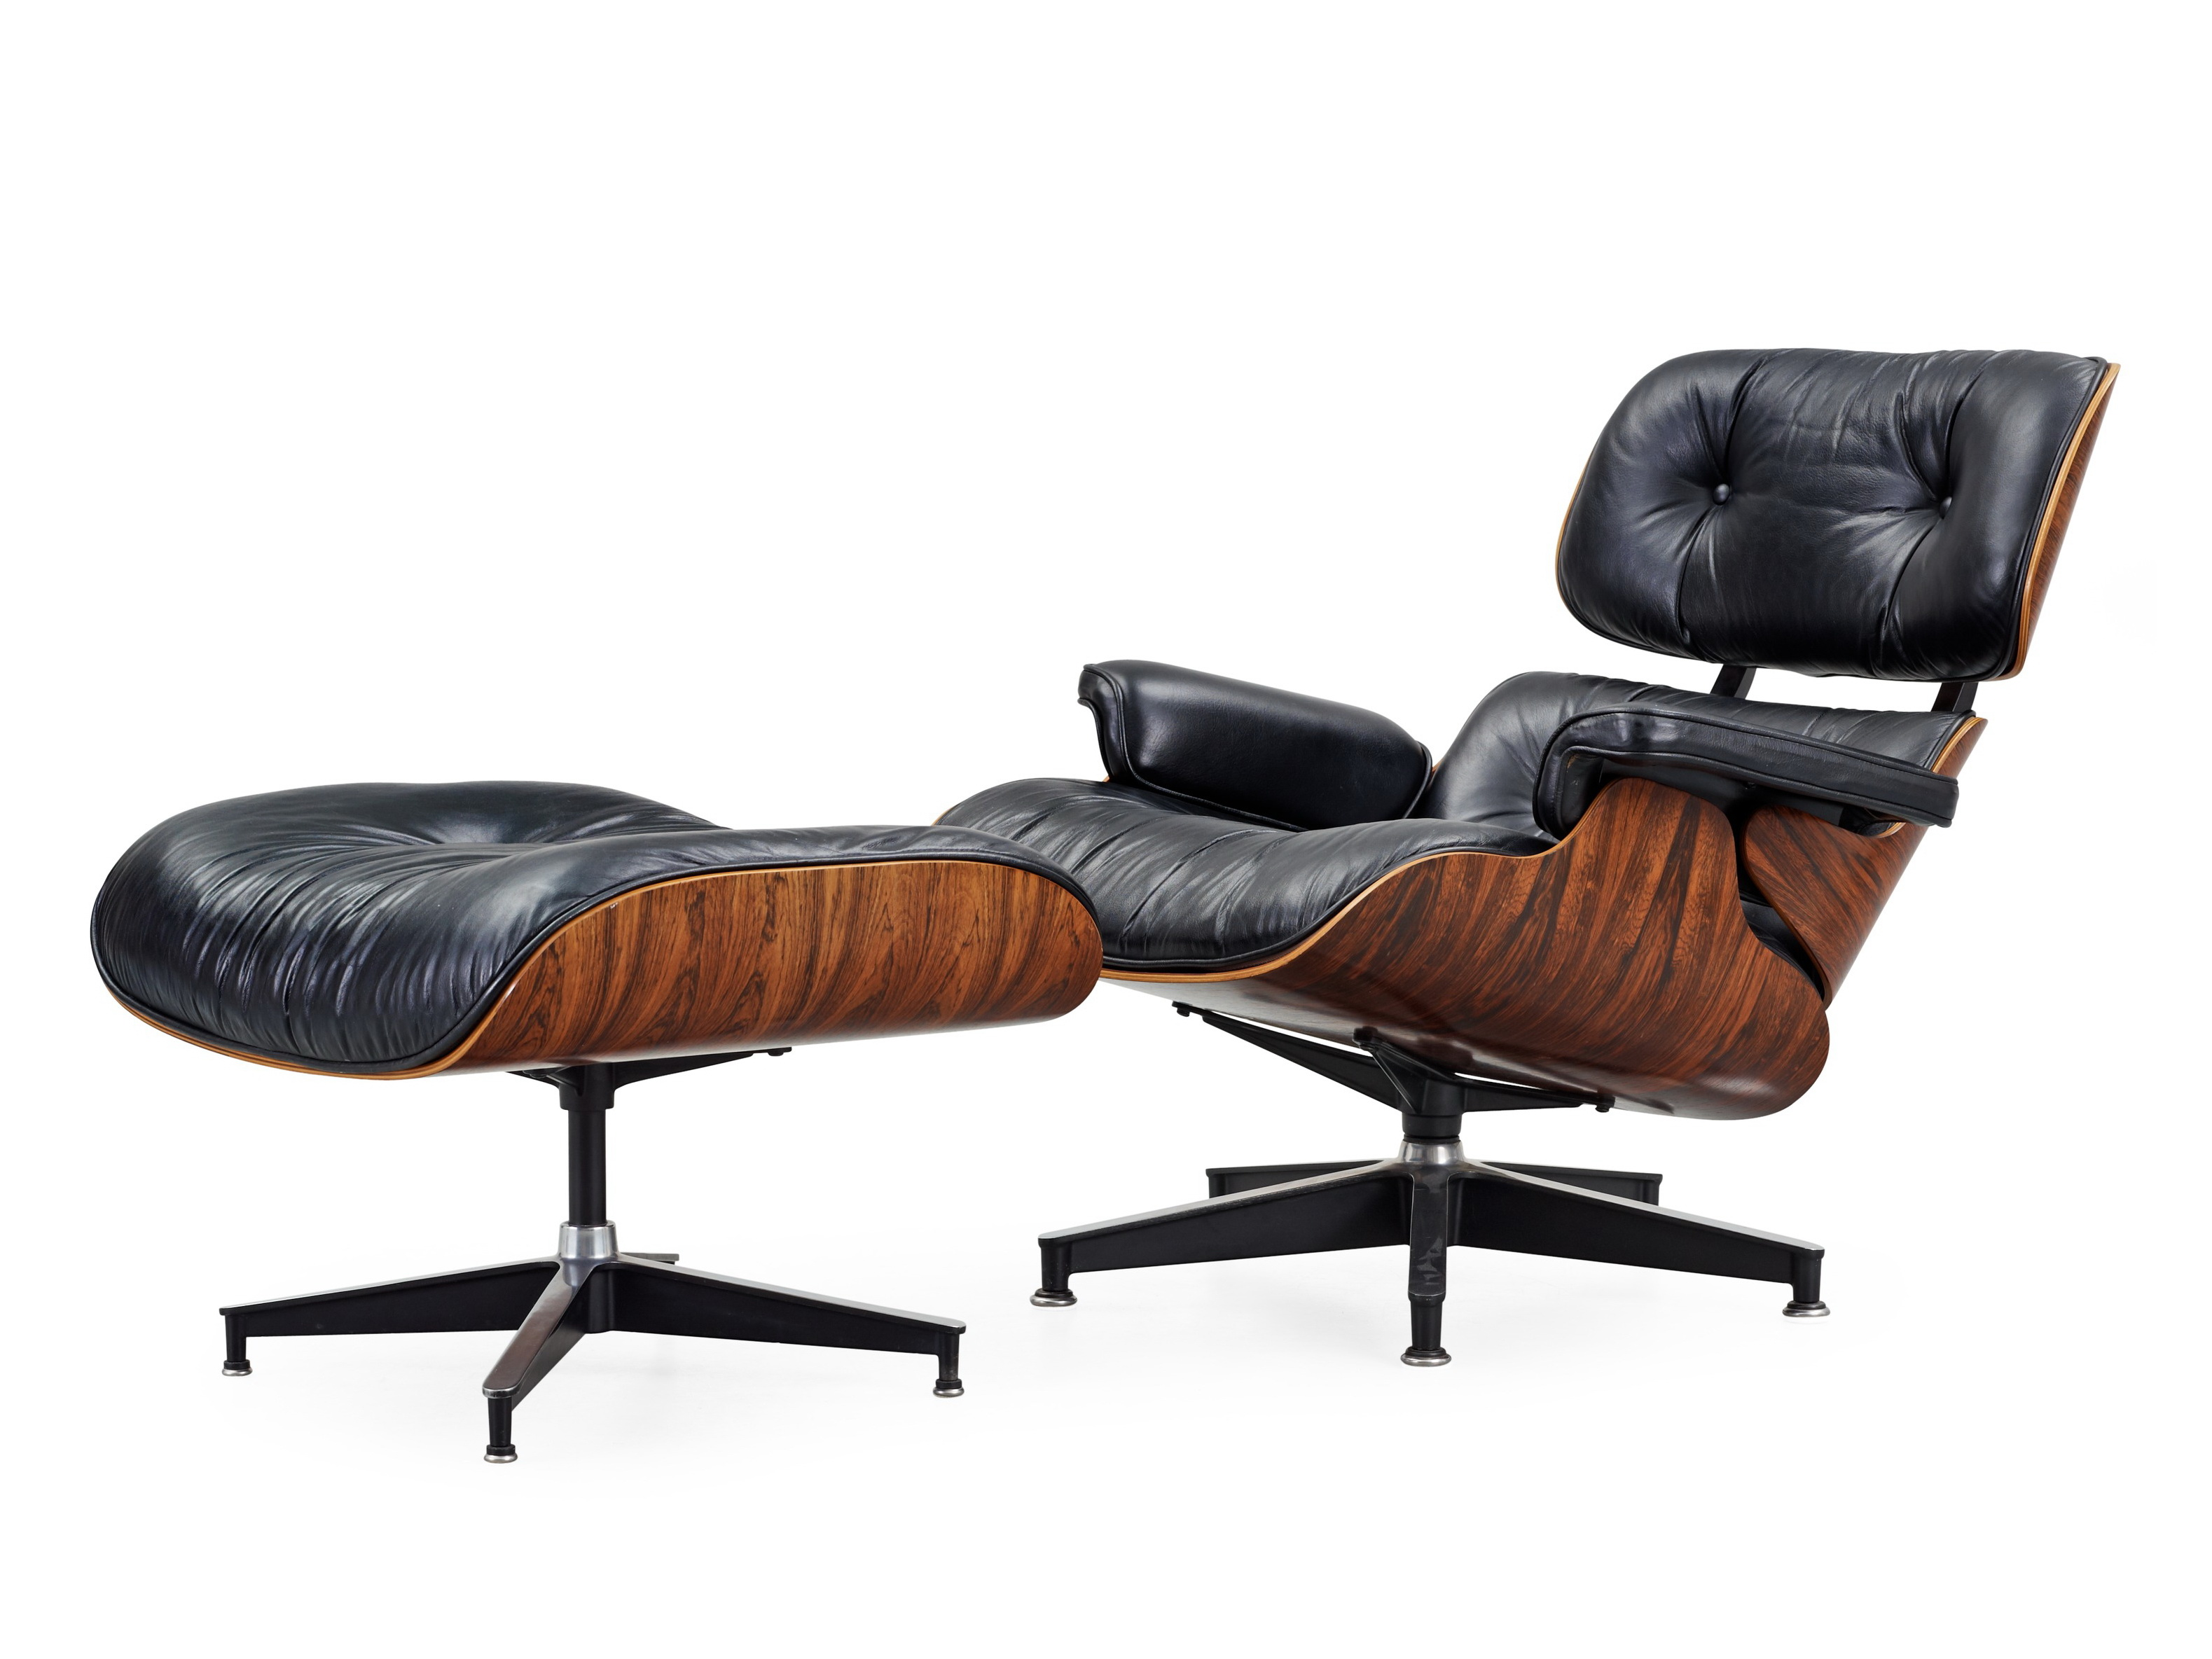 ARMCHAIR Charles and Ray Eames